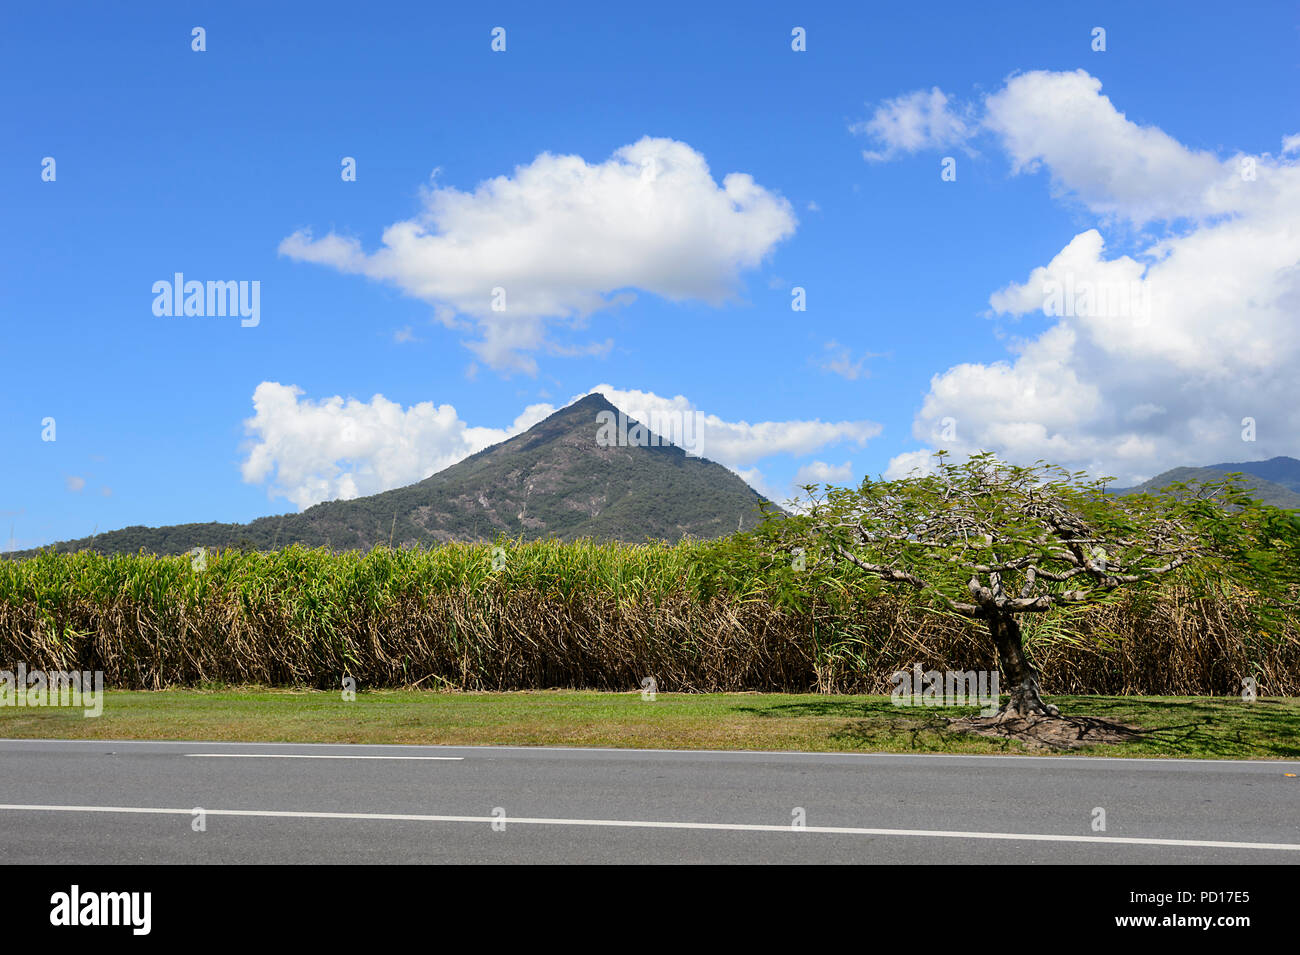 Sugarcane crop in front of Walsh's Pyramid, Gordonvale, Far North Queensland, FNQ, QLD, Australia - Stock Image